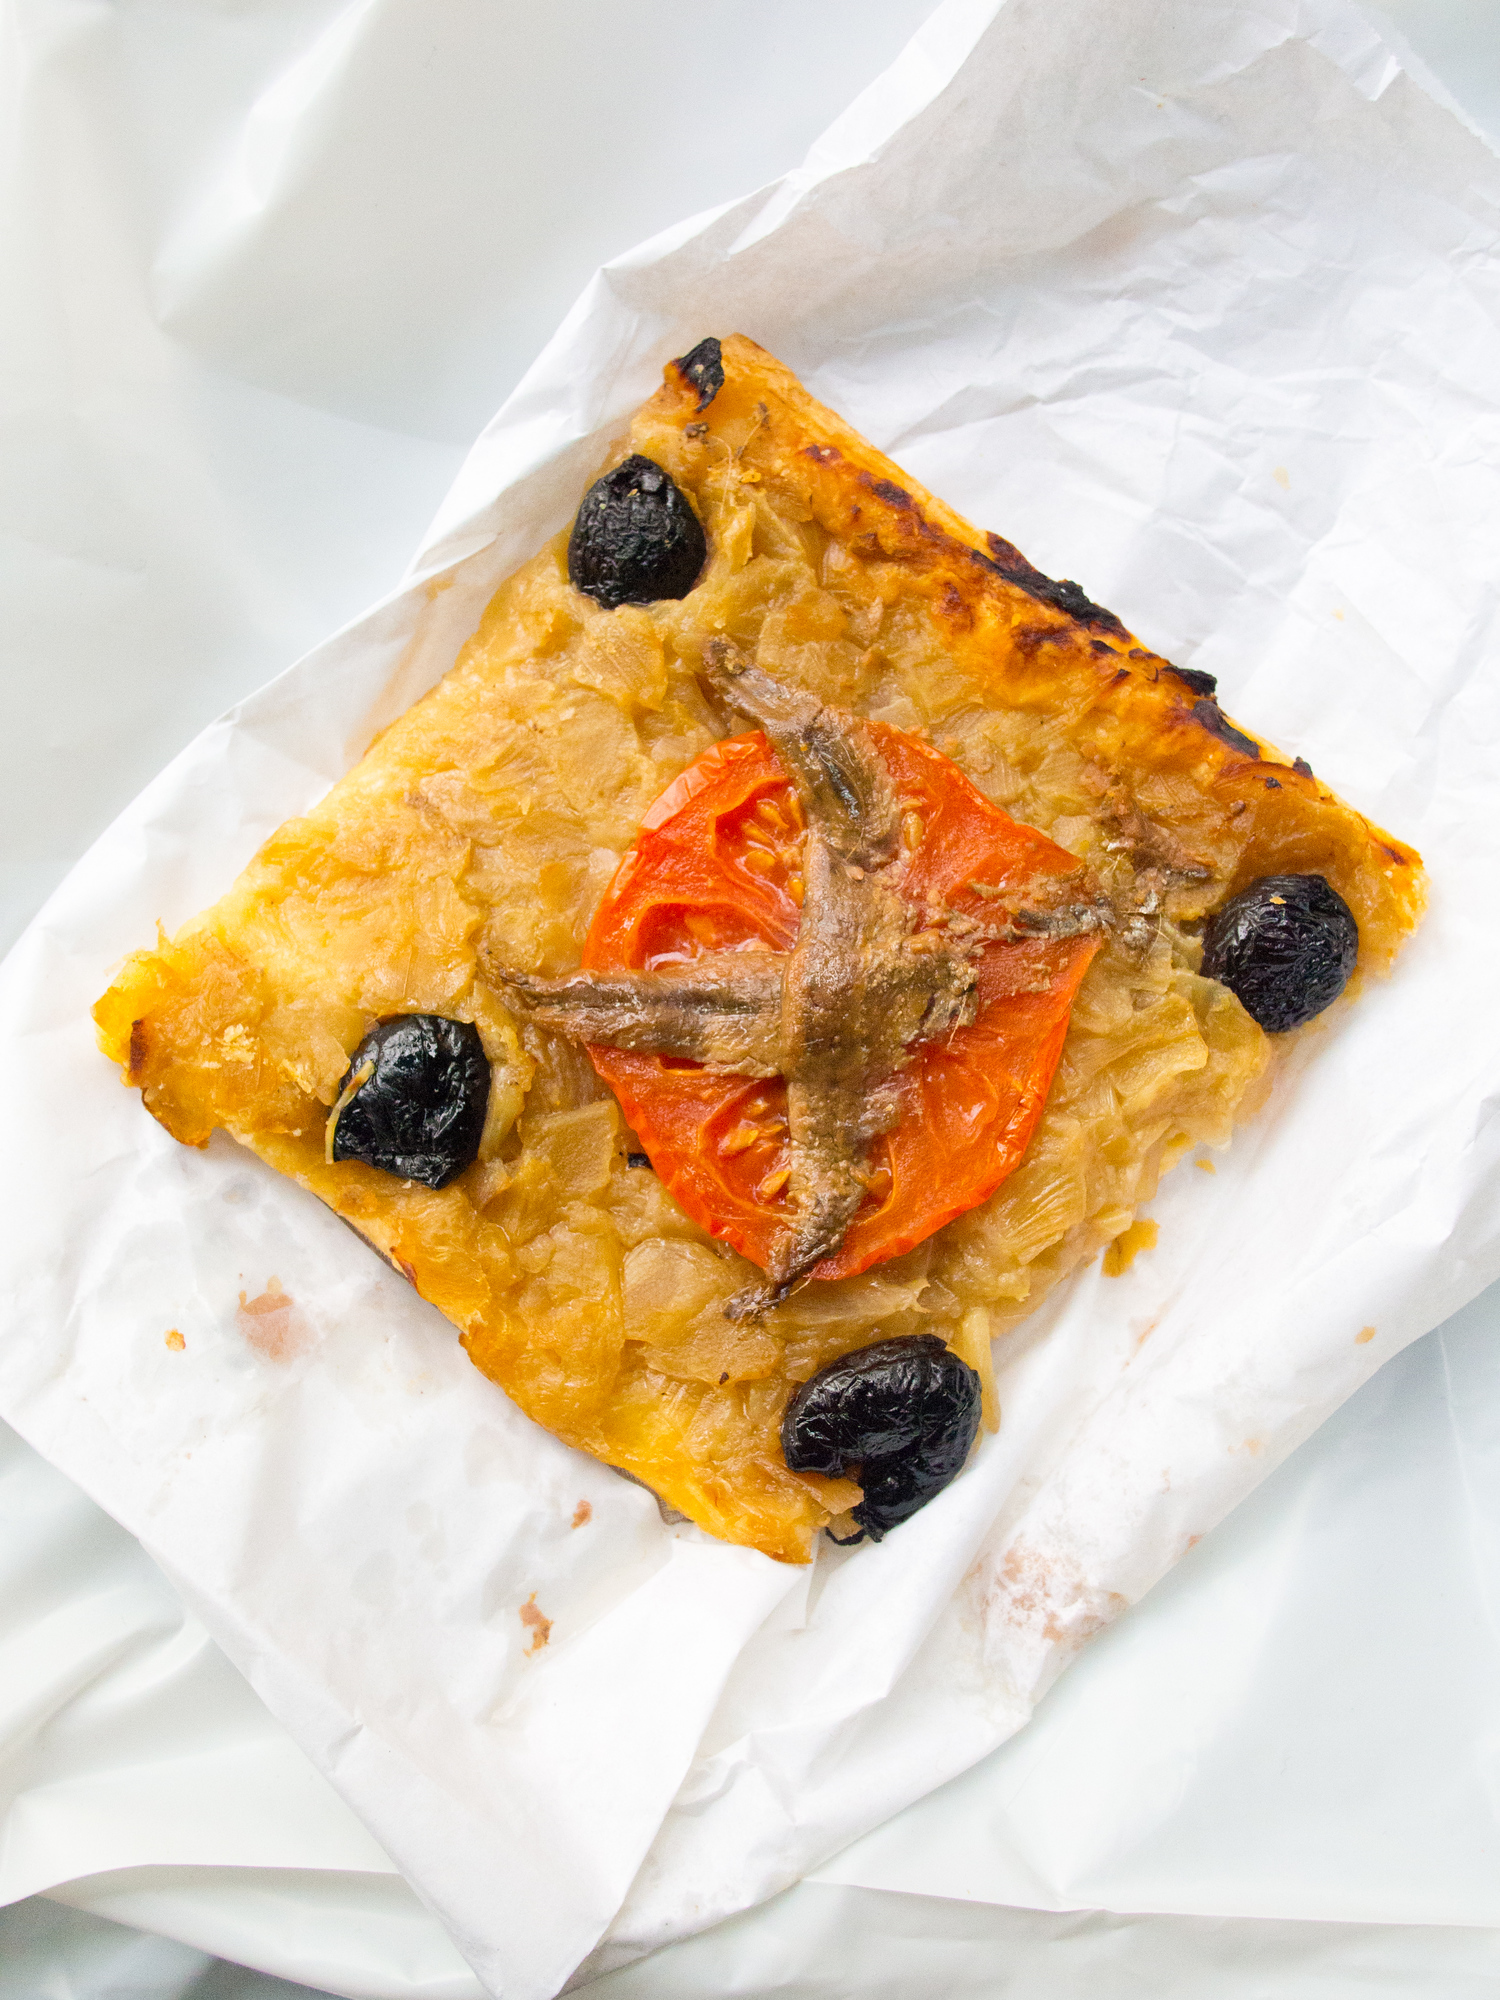 Pissaladière is a typical provencal tart, similar to pizza but traditionally made with onions, anchovies, and black olives. Discover what else to eat in Marseille, the oldest city in France with culinary influences from Spain, Italy and Northern Africa.